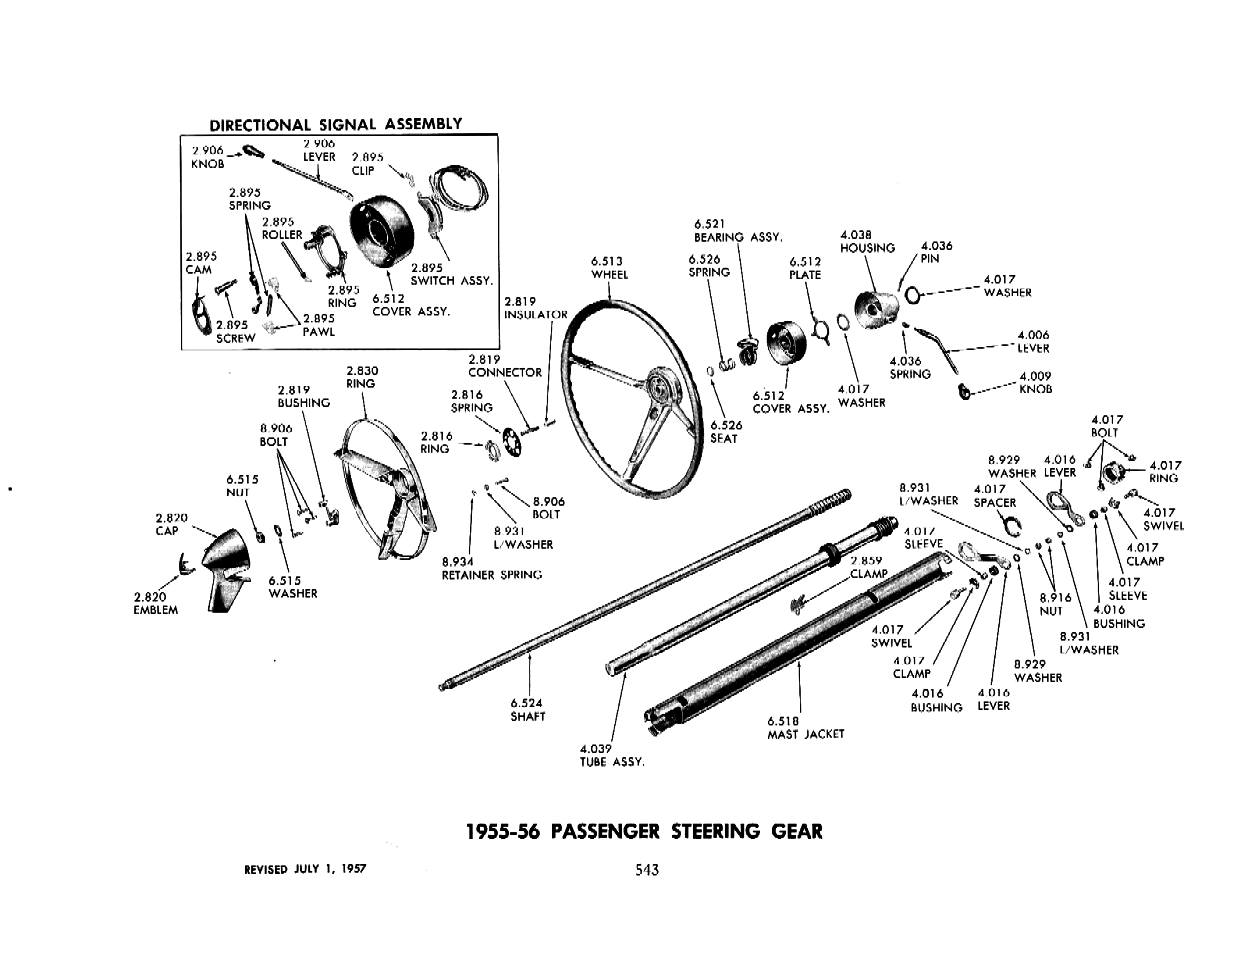 Gm Steering Column Diagram on 1998 Buick Riviera